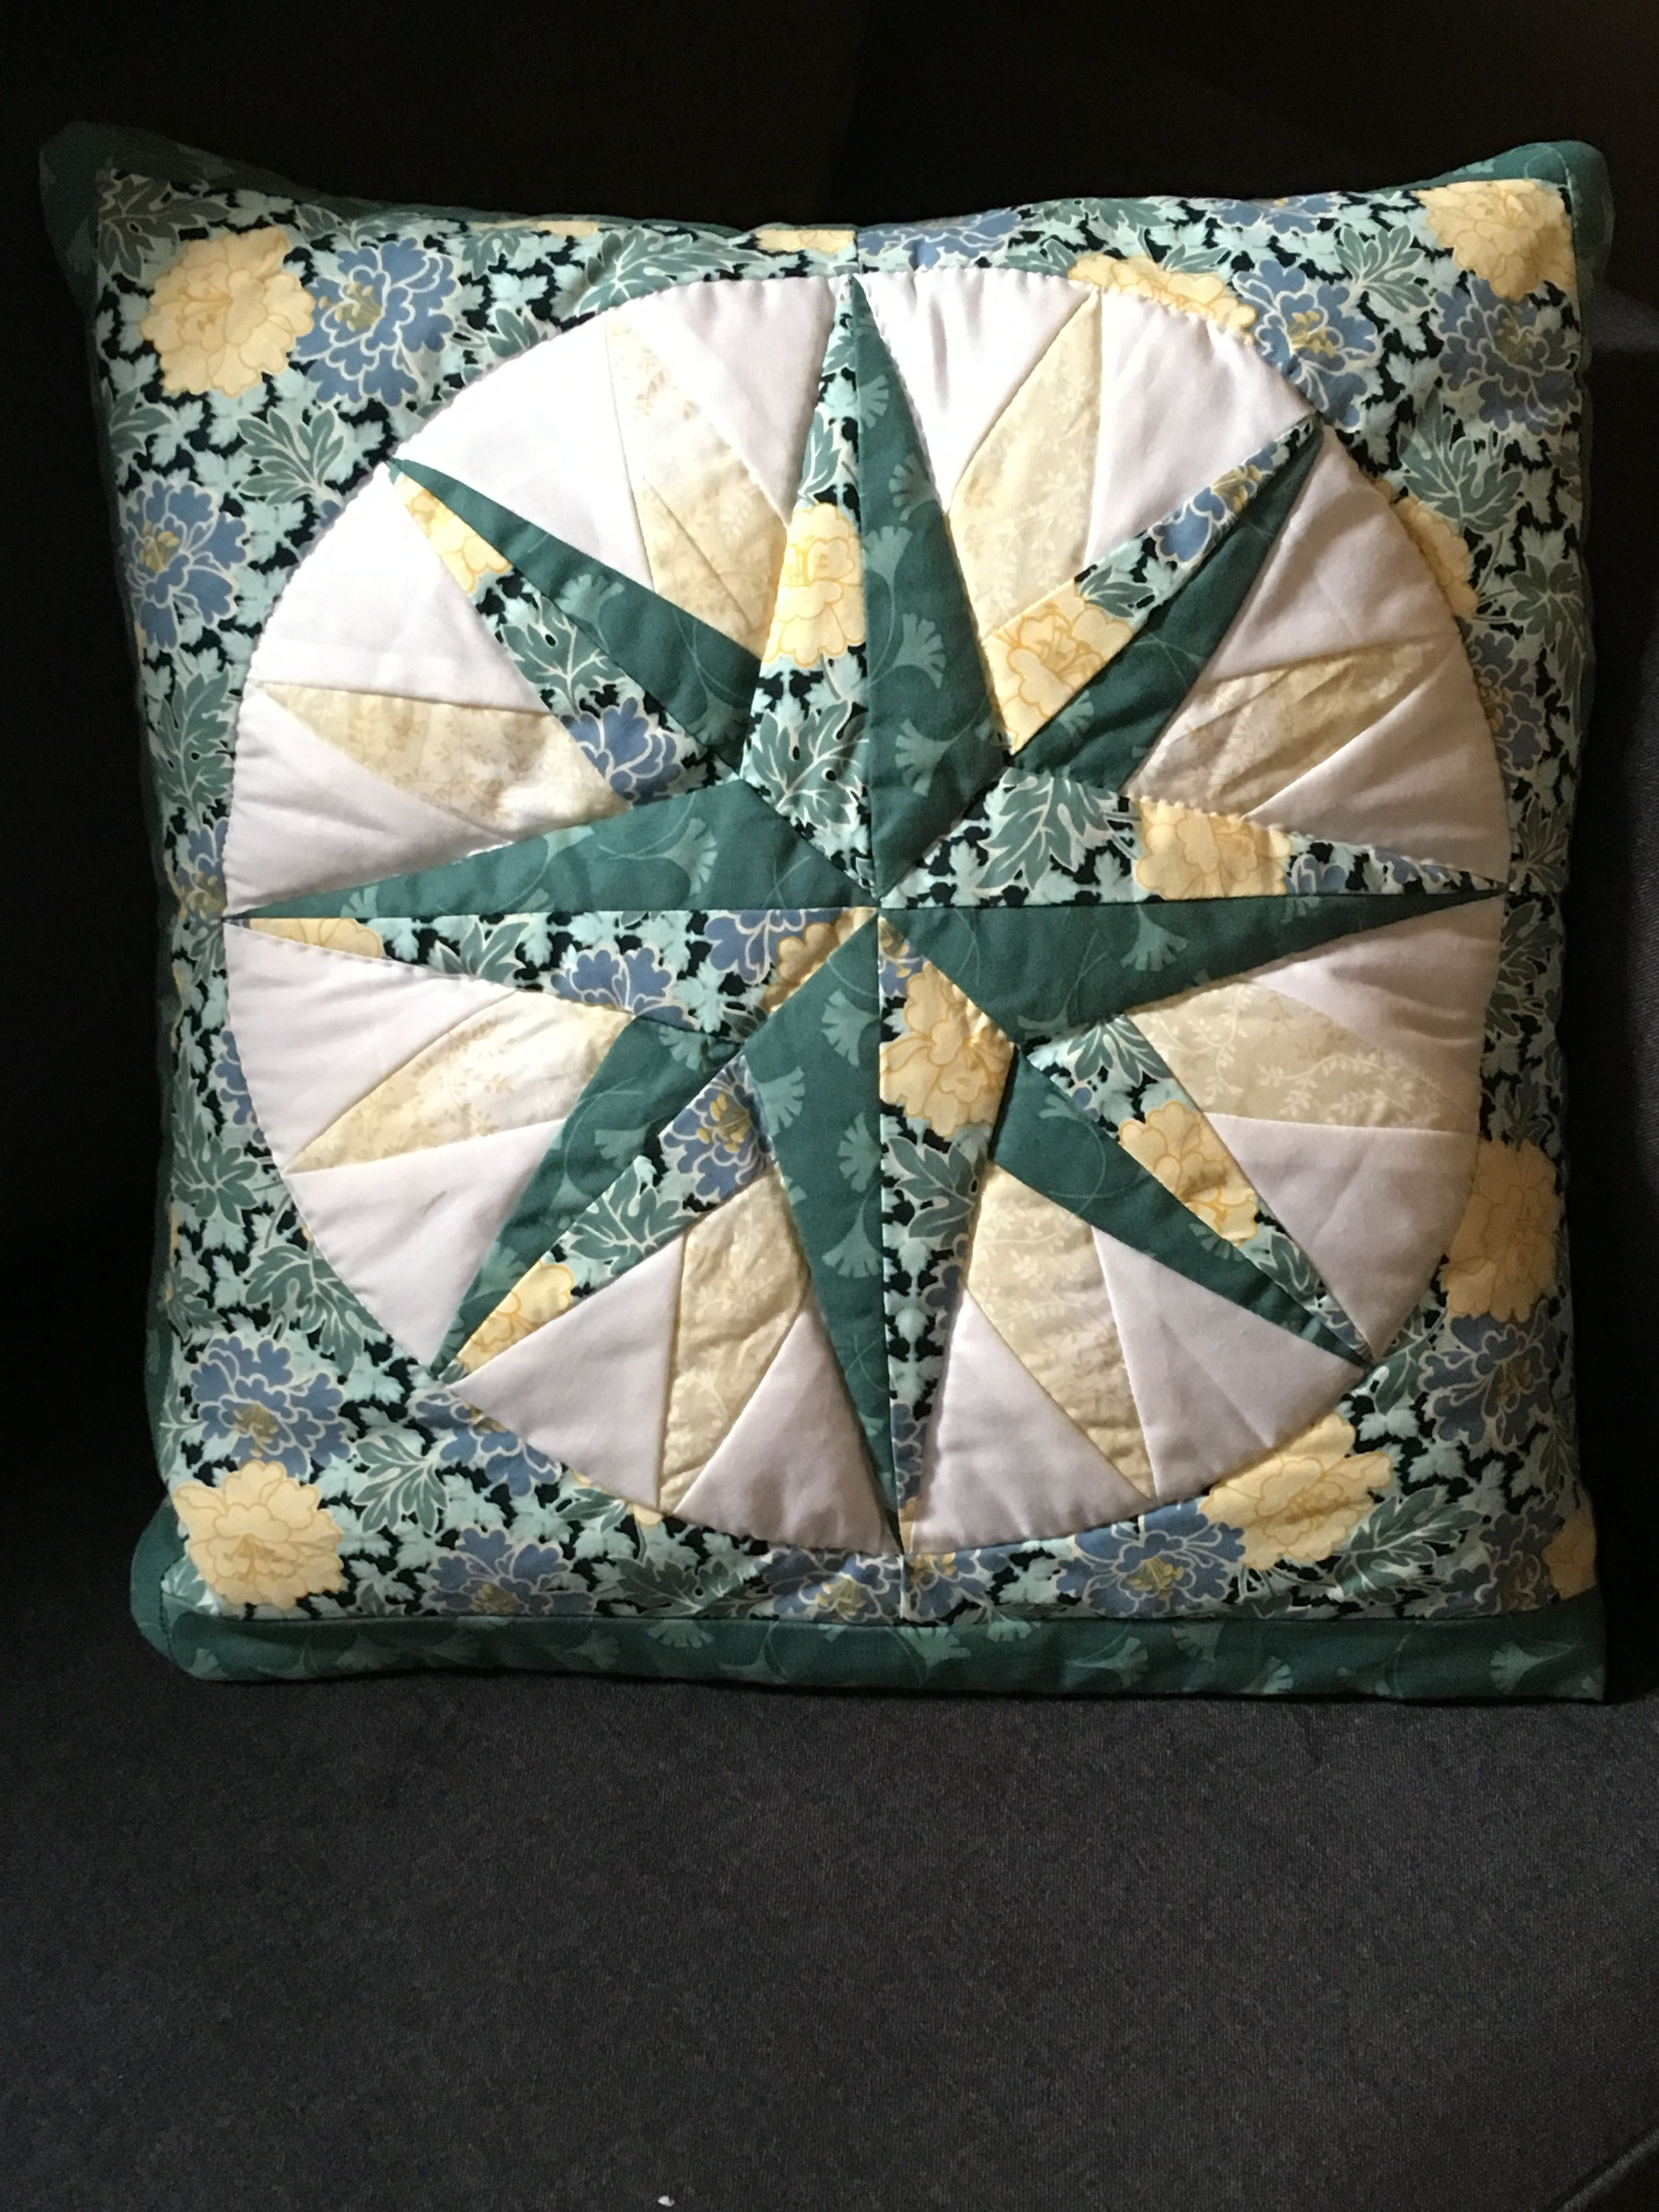 This Is A Purchased Quillow That Is A Lap Quilt Which Folds Up To